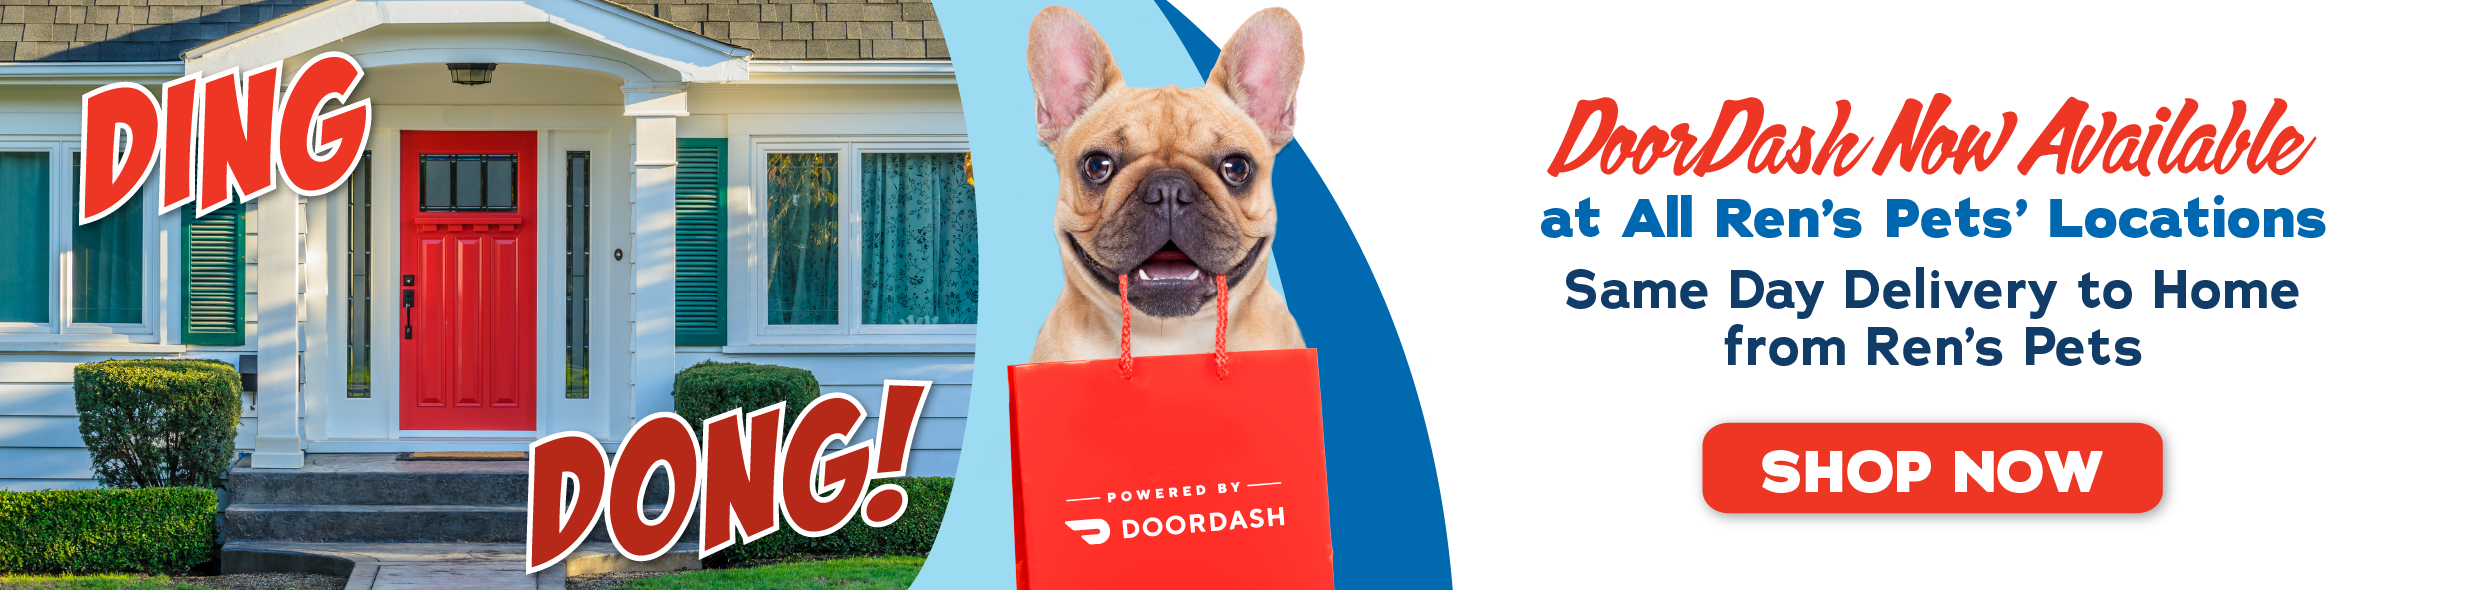 Ding Dong! DoorDash Now Available at all Ren's Pets' locations. Same-Day Delivery to Home from Ren's Pets